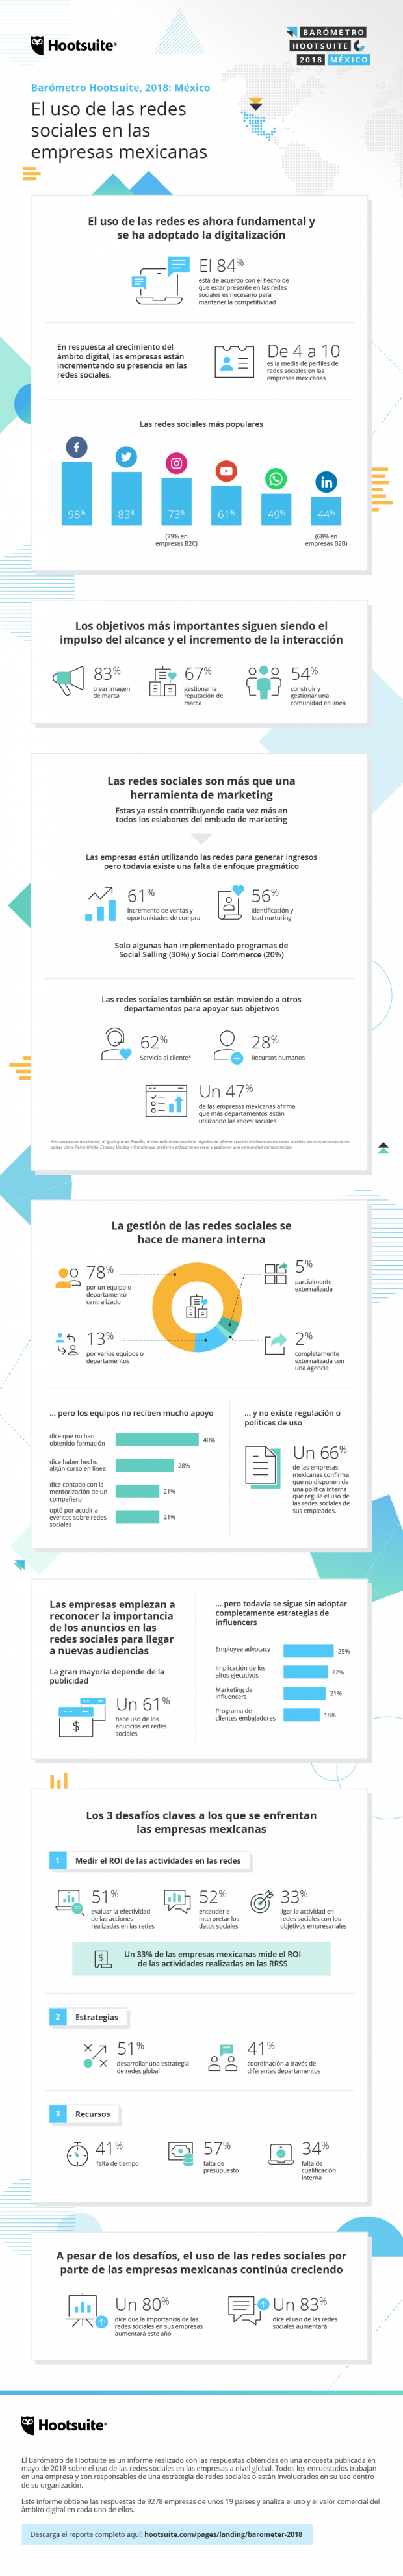 Marketing Social - Infografía México